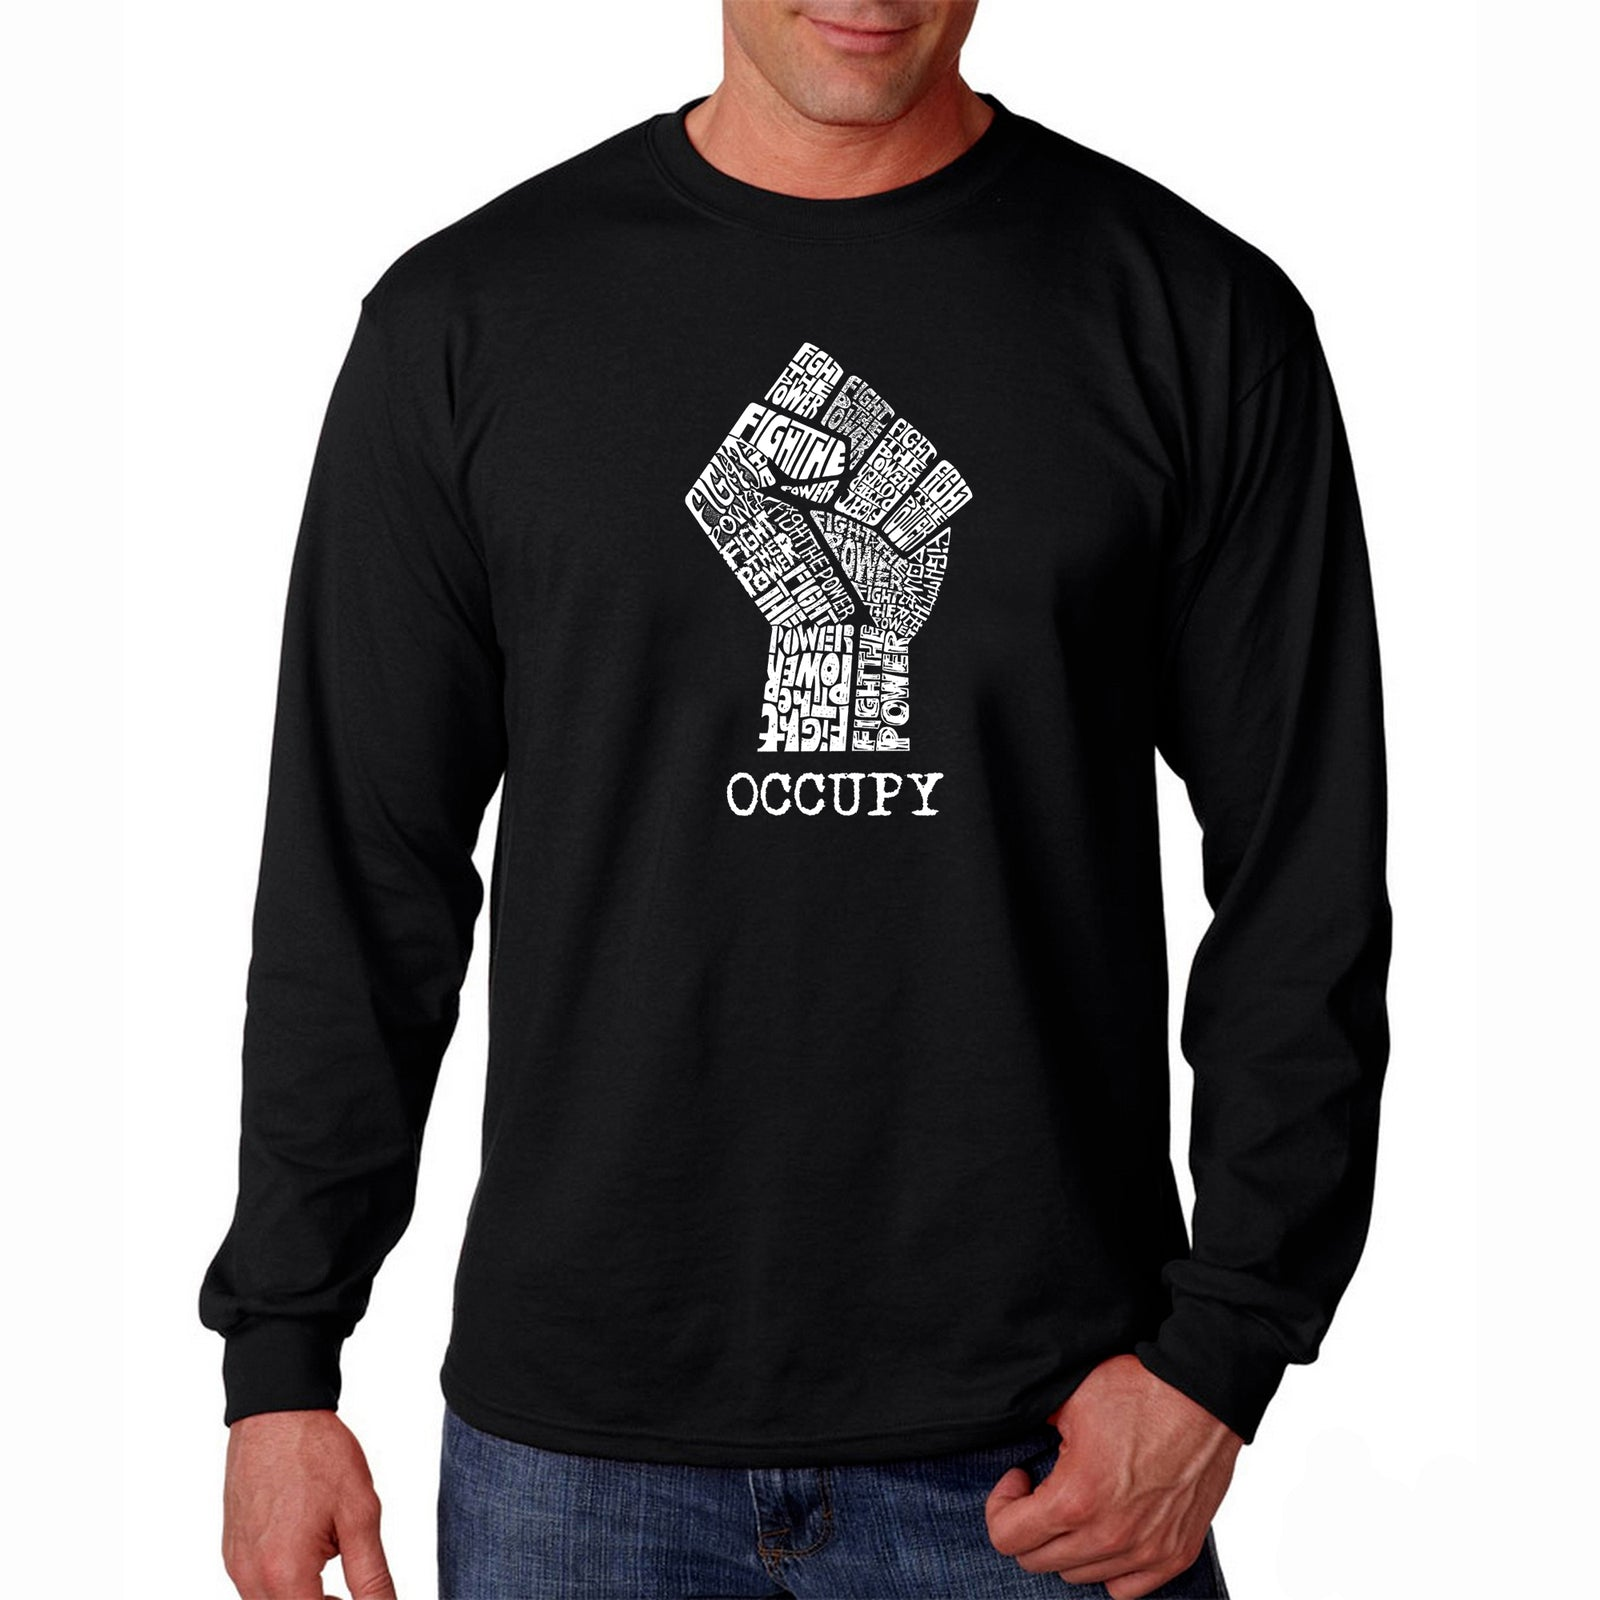 Men's Long Sleeve T-shirt - OCCUPY WALL STREET - FIGHT THE POWER